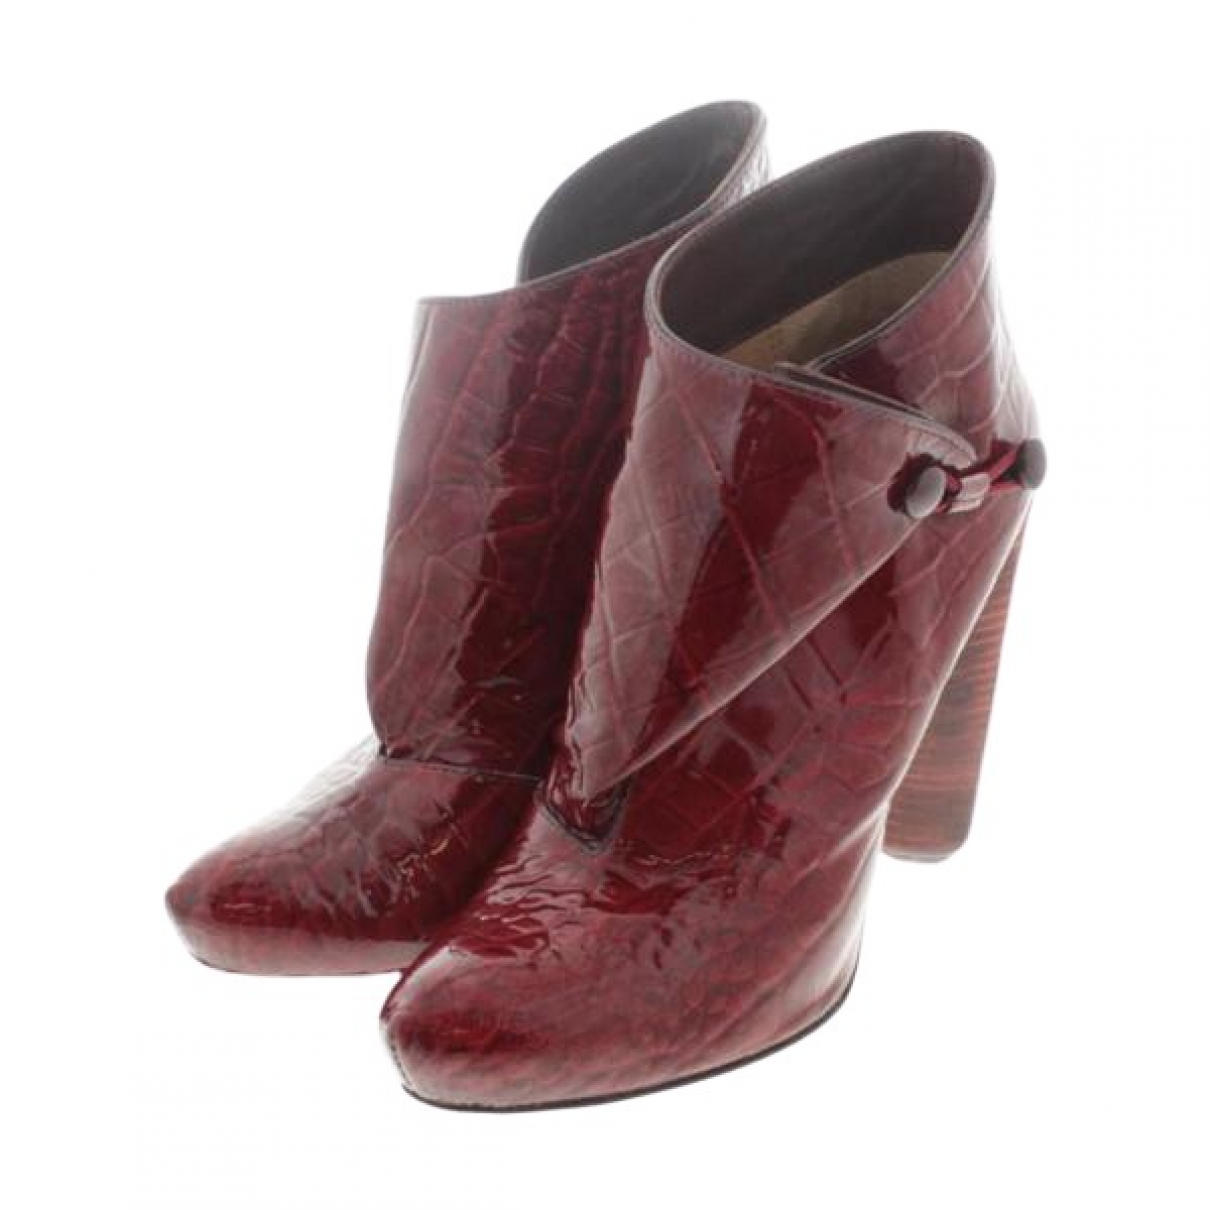 Louis Vuitton \N Burgundy Patent leather Ankle boots for Women 35 EU